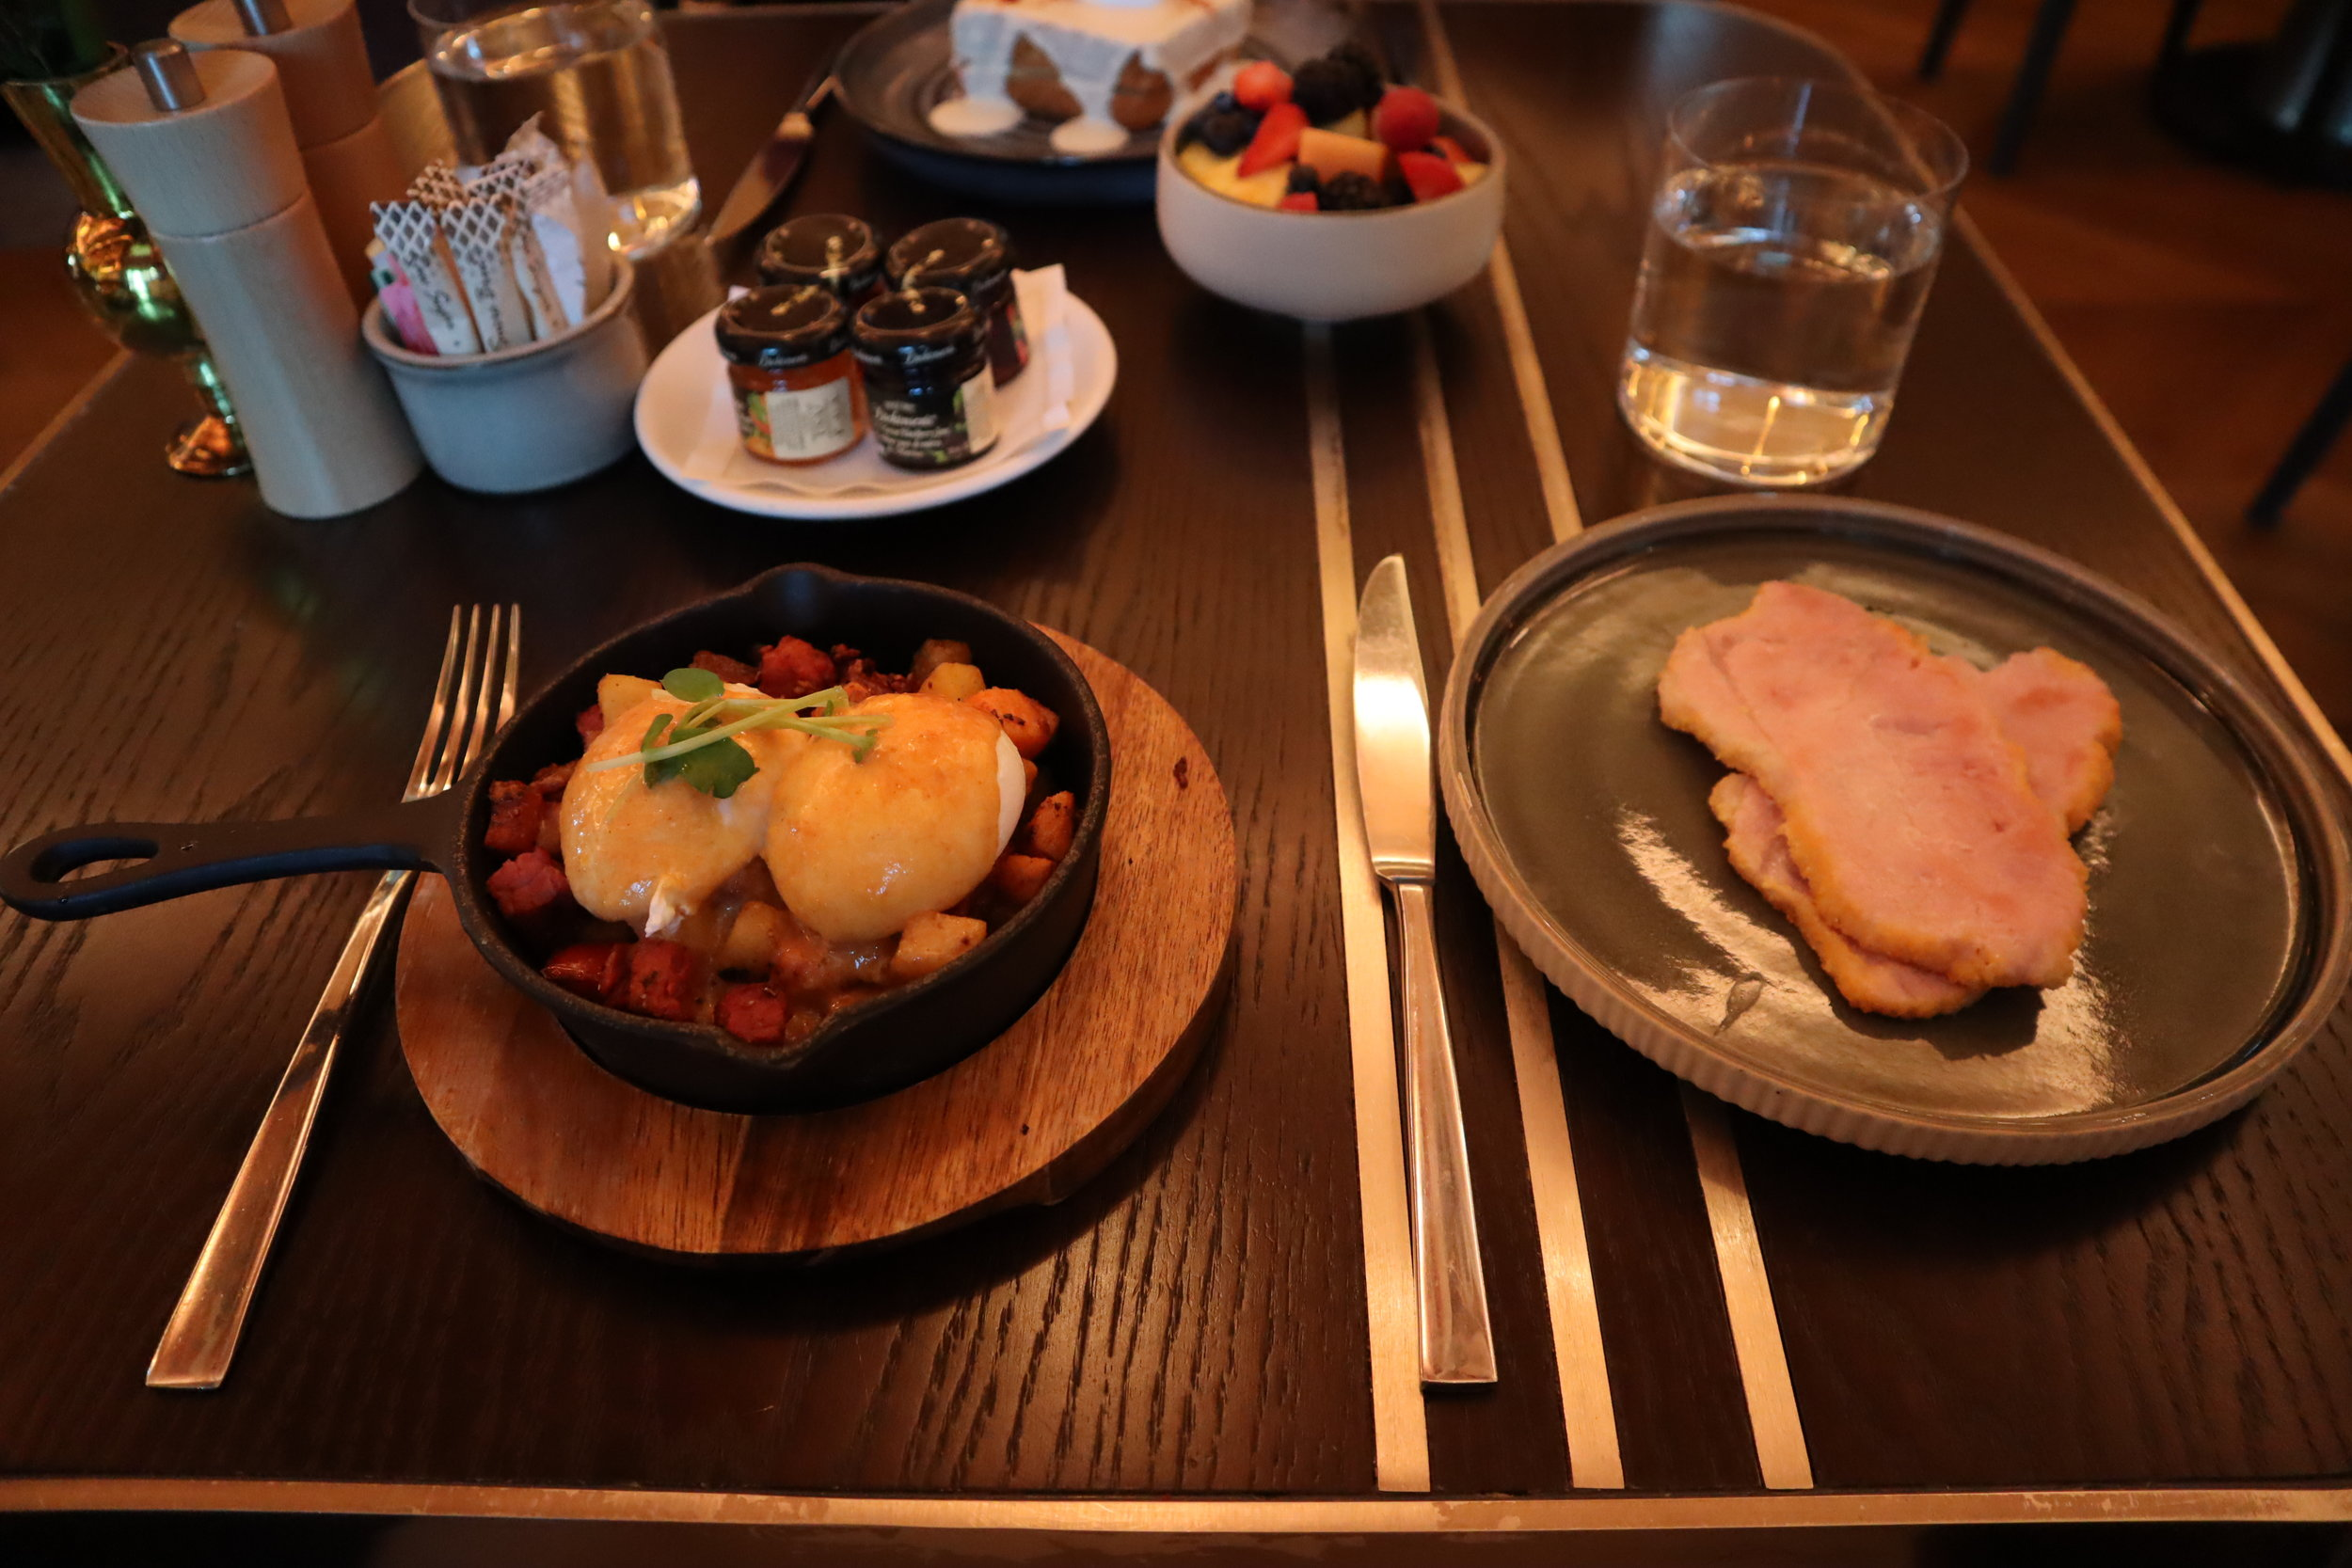 St. Regis Toronto – Pastrami hash skillet with peameal bacon